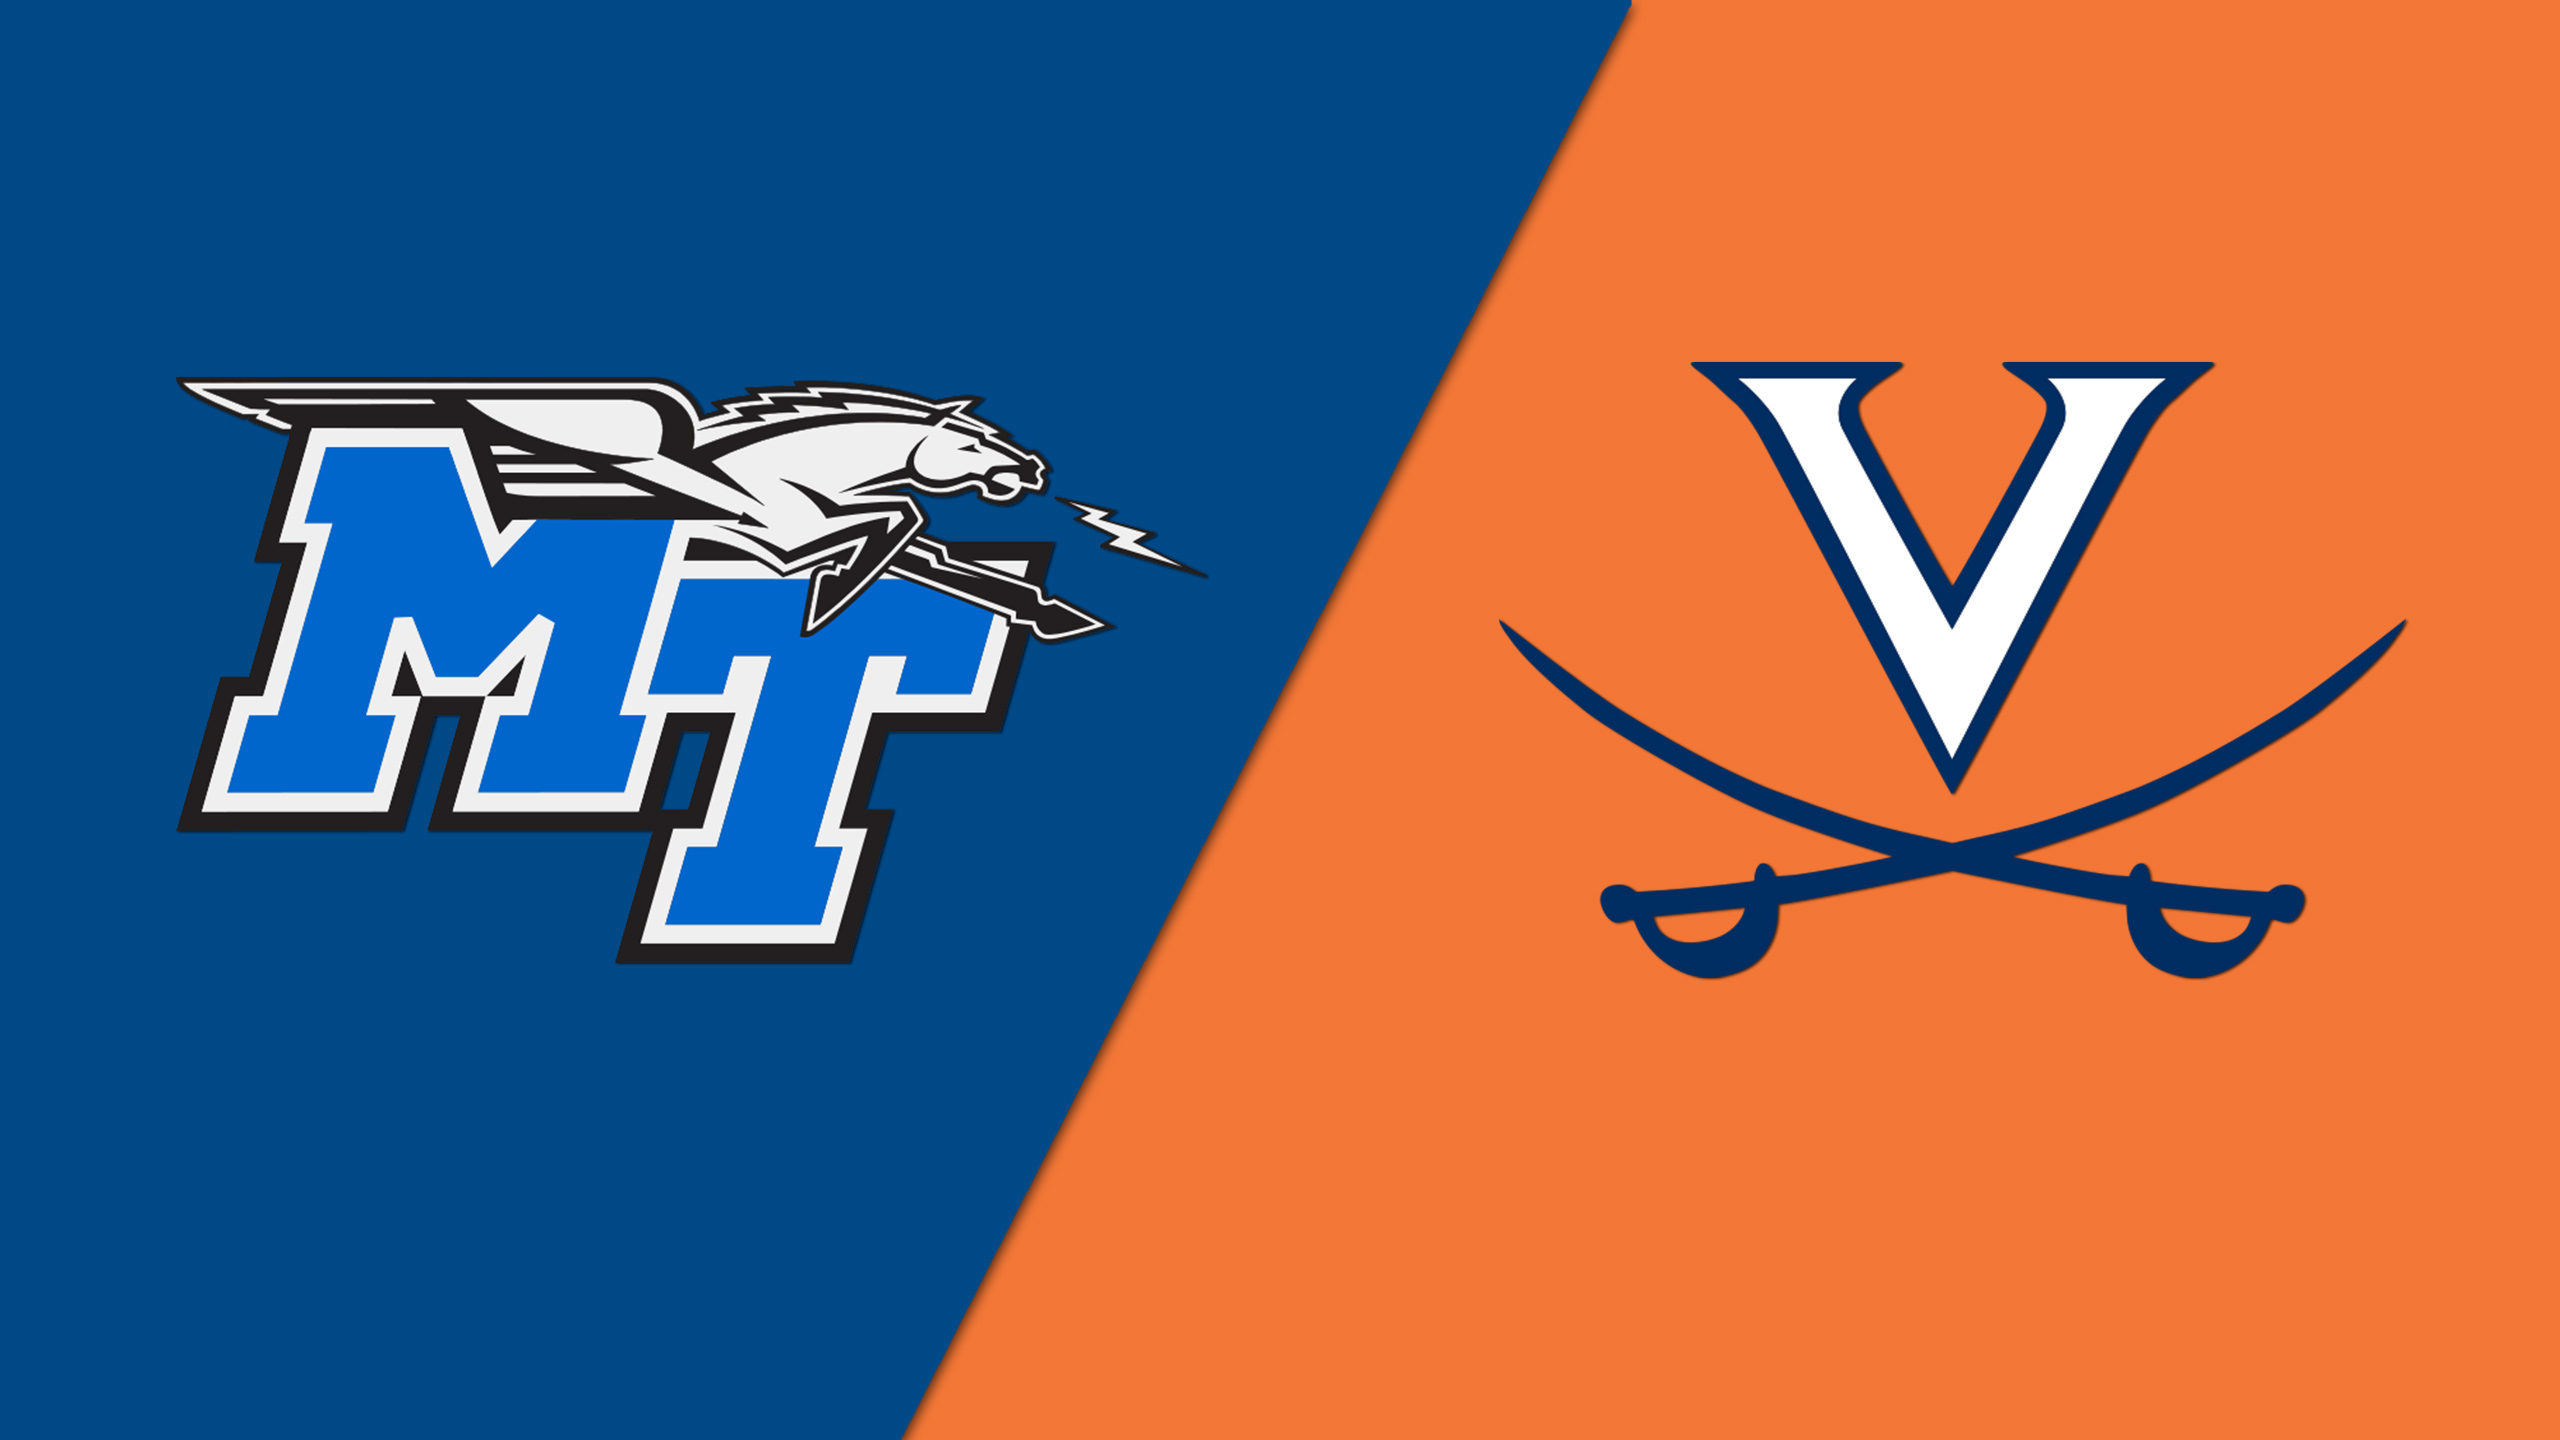 Middle Tennessee State vs. #4 Virginia (Quarterfinal #4) (Battle 4 Atlantis)